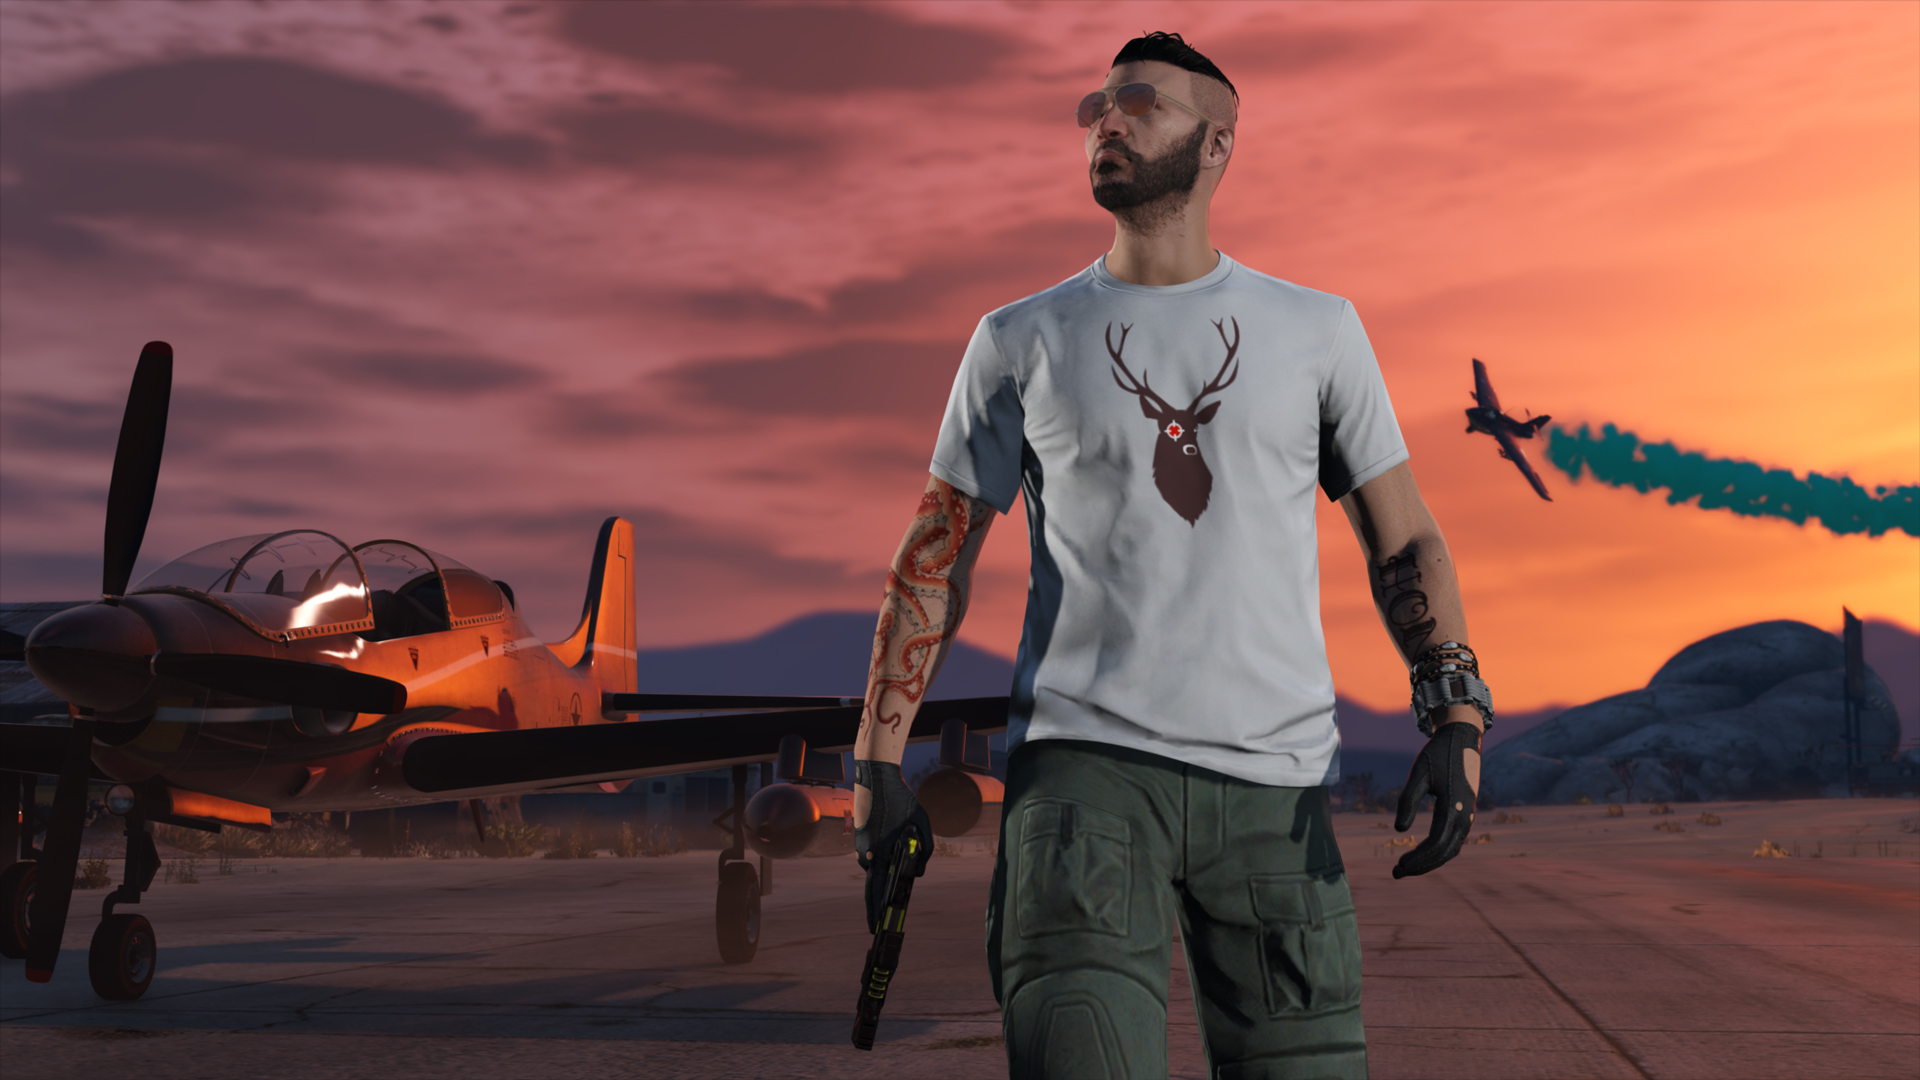 gta online s new update brings new discounts bonus cash and guest